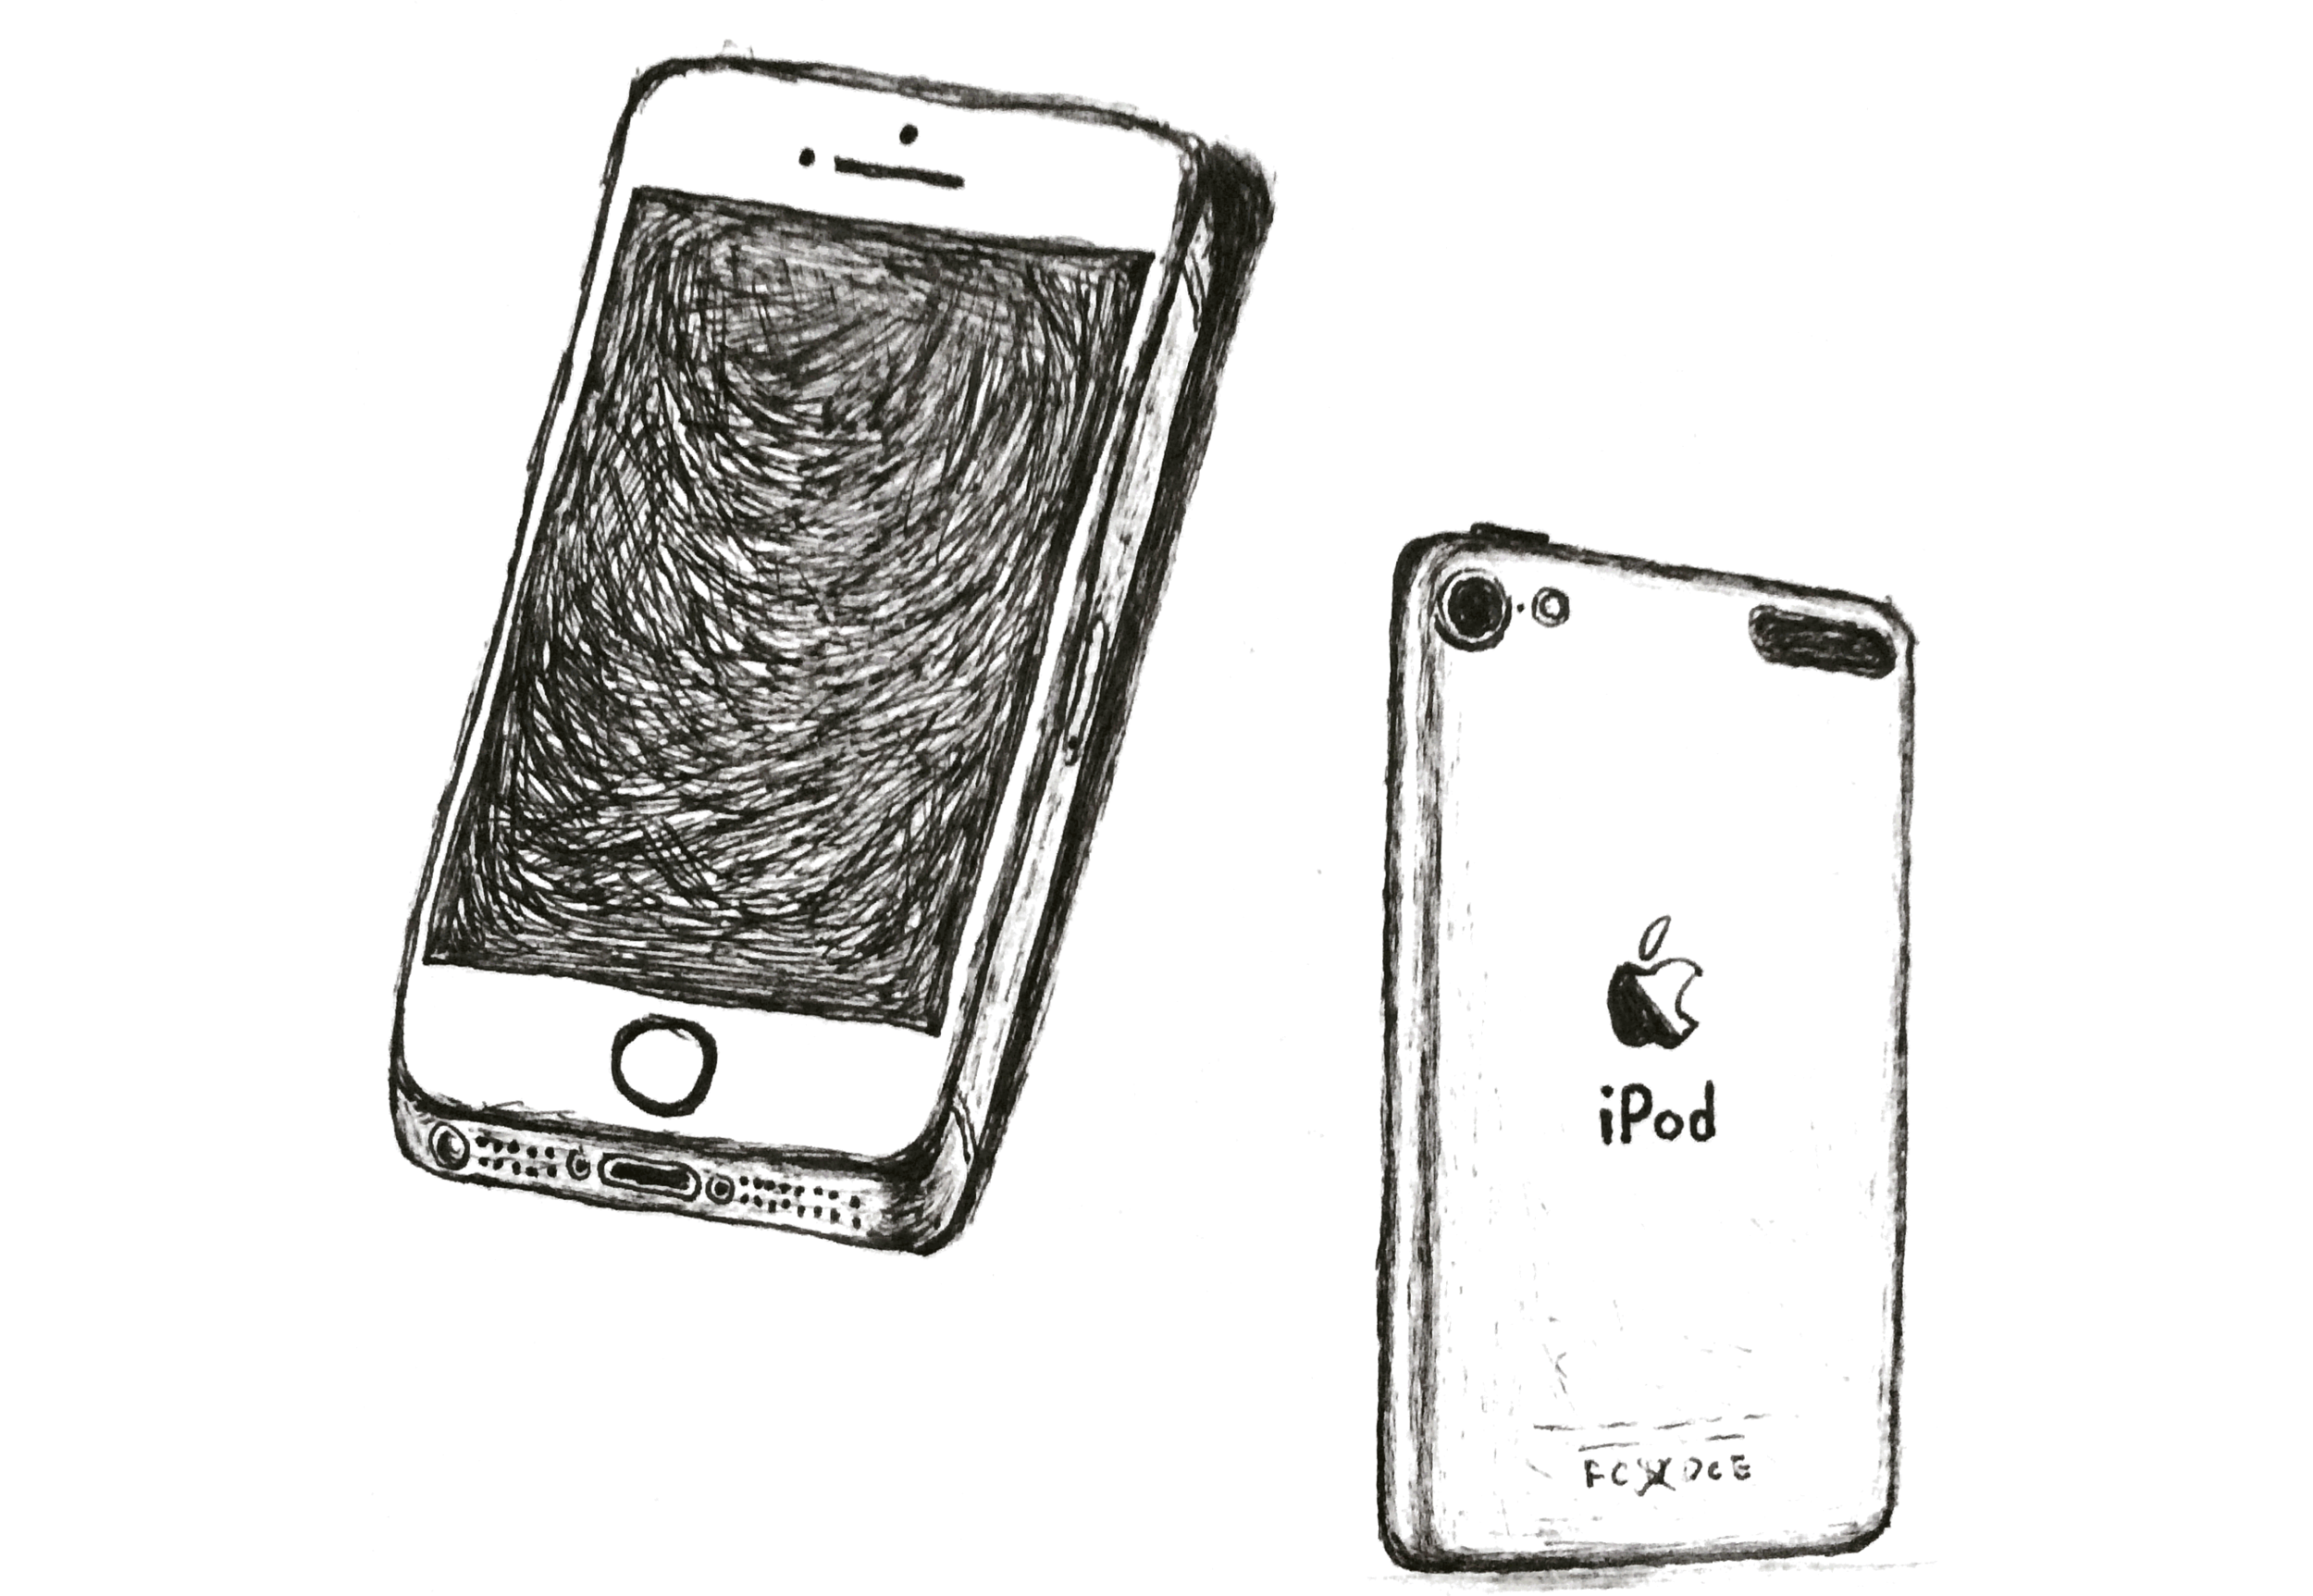 My sketch of iPhone 5s/SE and iPod touch